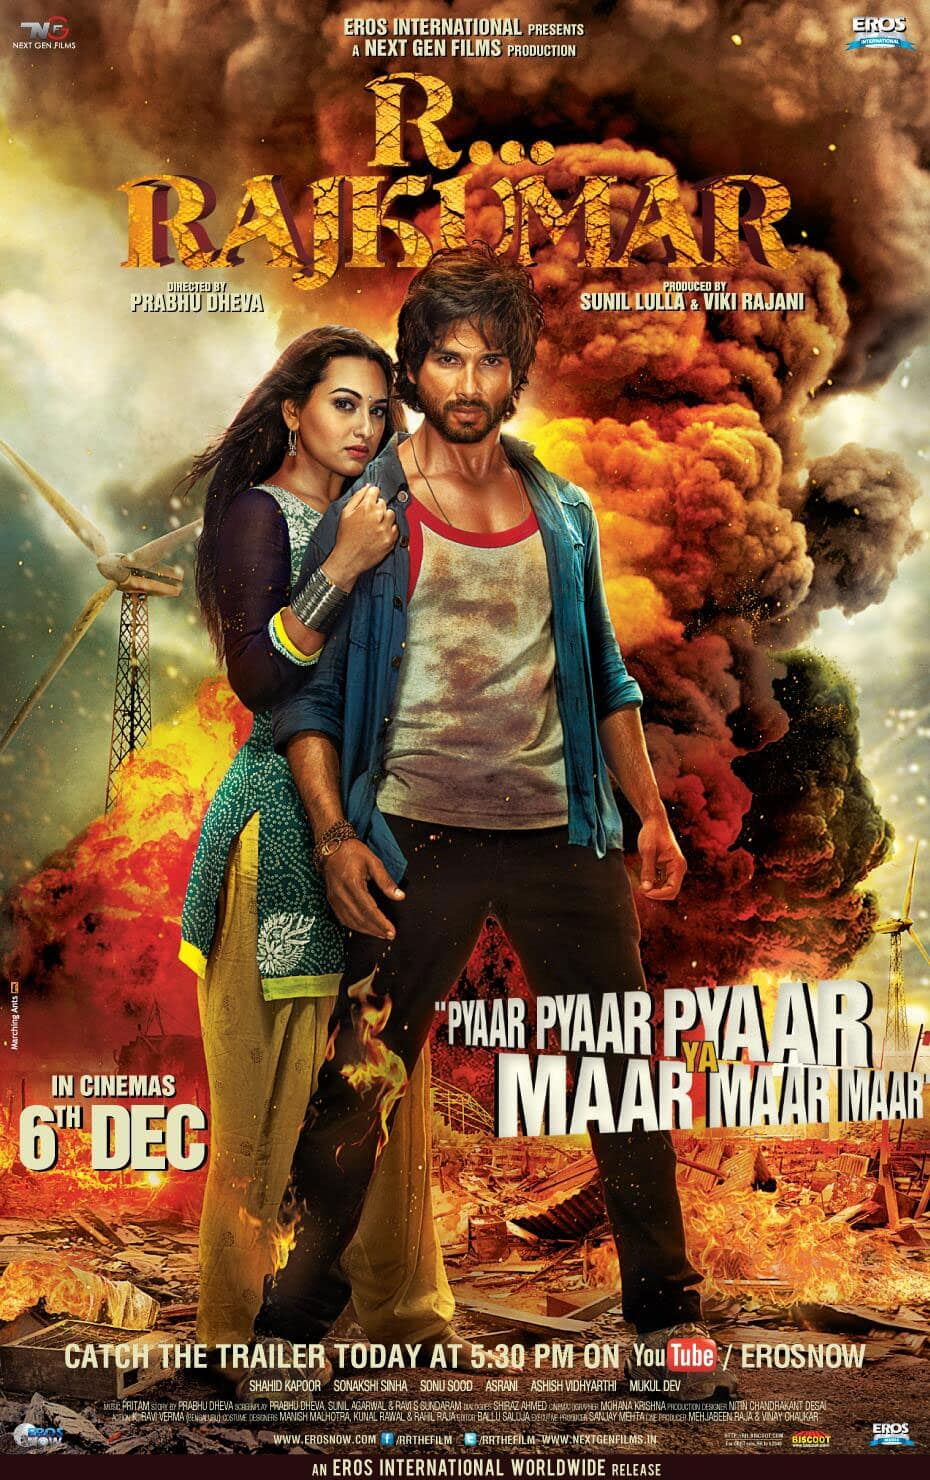 Movie still - R... Rajkumar